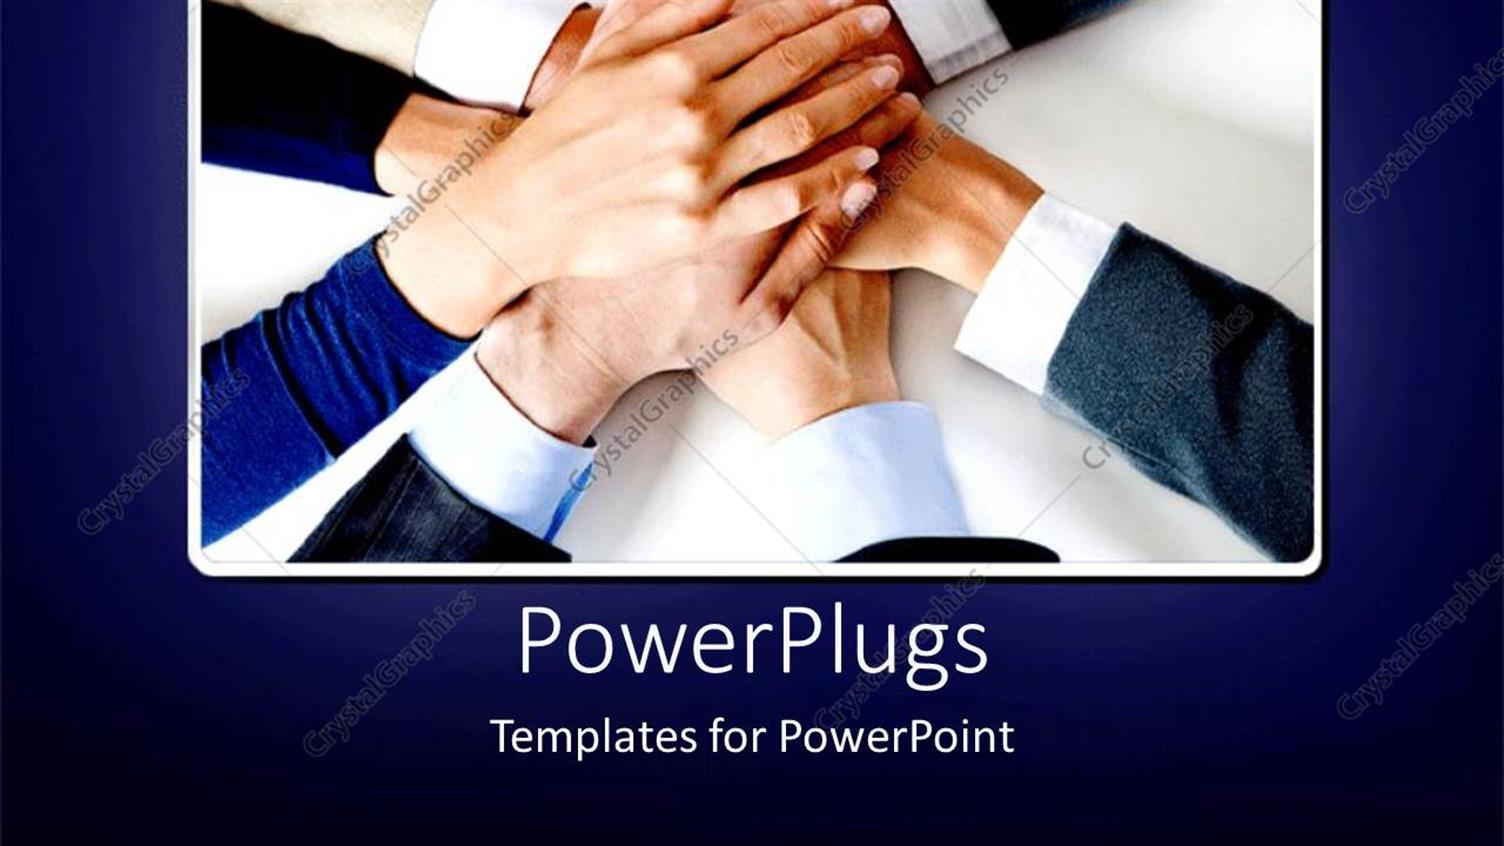 PowerPoint Template Displaying Lots of Adult Hands Joining Together Depicting Team Work